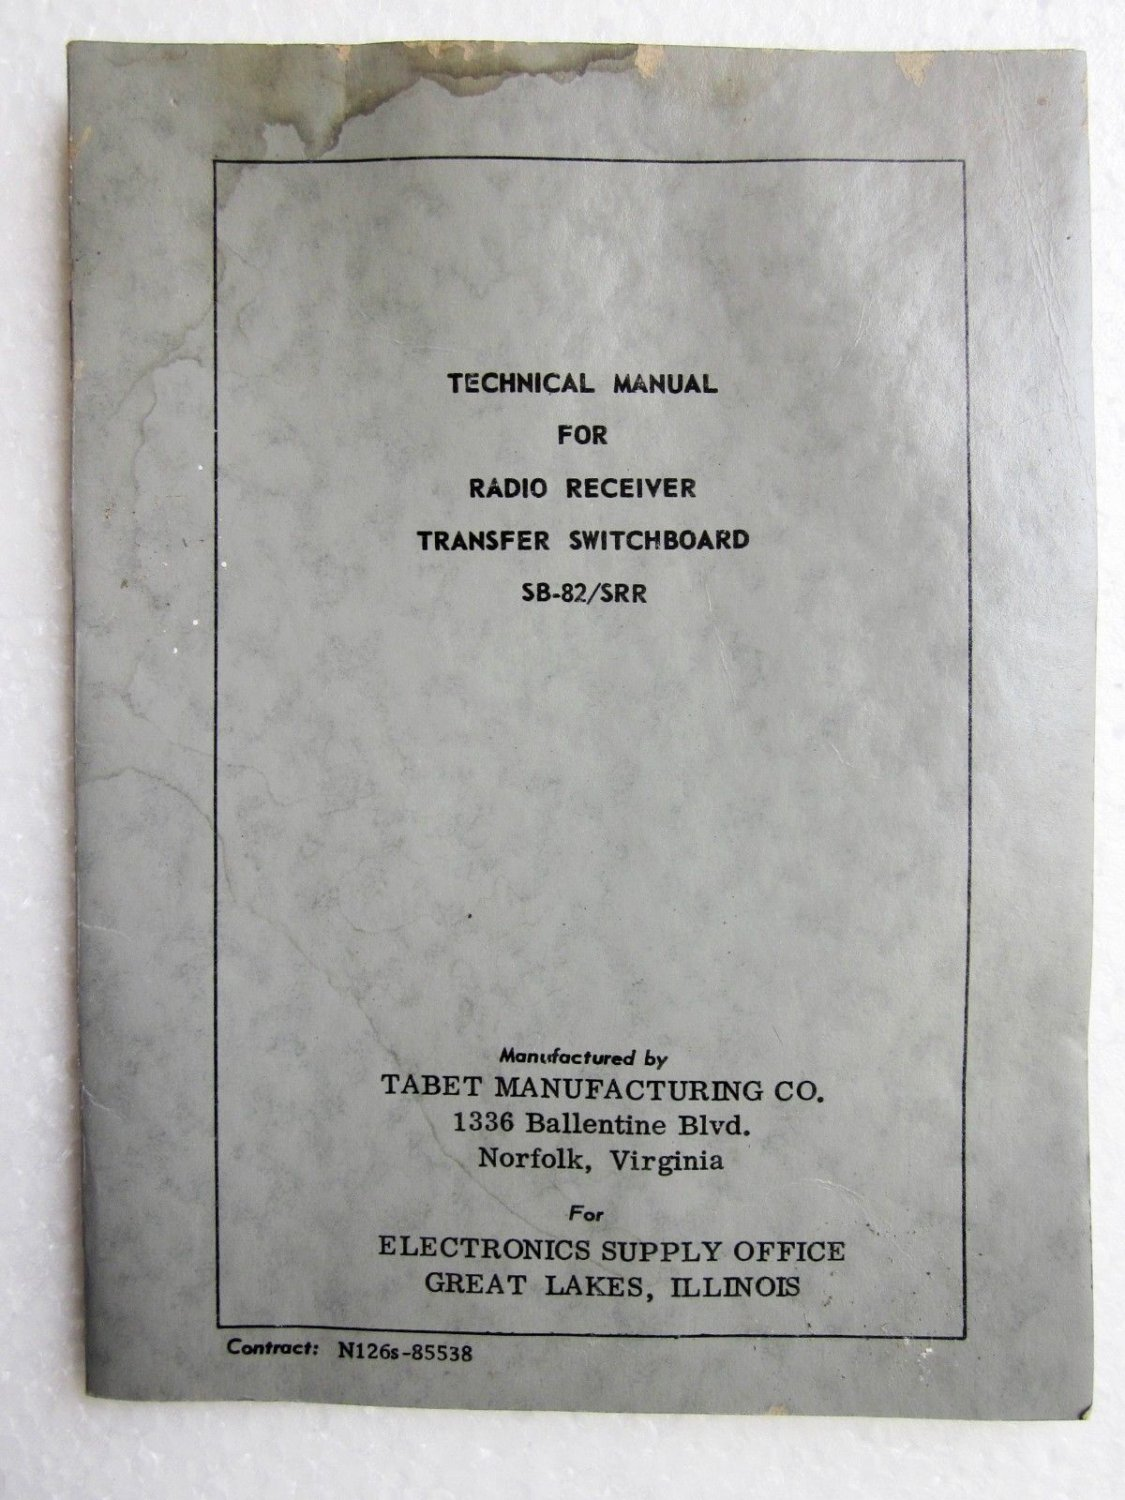 1950s Military TECHNICAL MANUAL FOR RADIO RECEIVER TRANSFER SWITCHBOARD SB-82/SRR - TABET MFG.